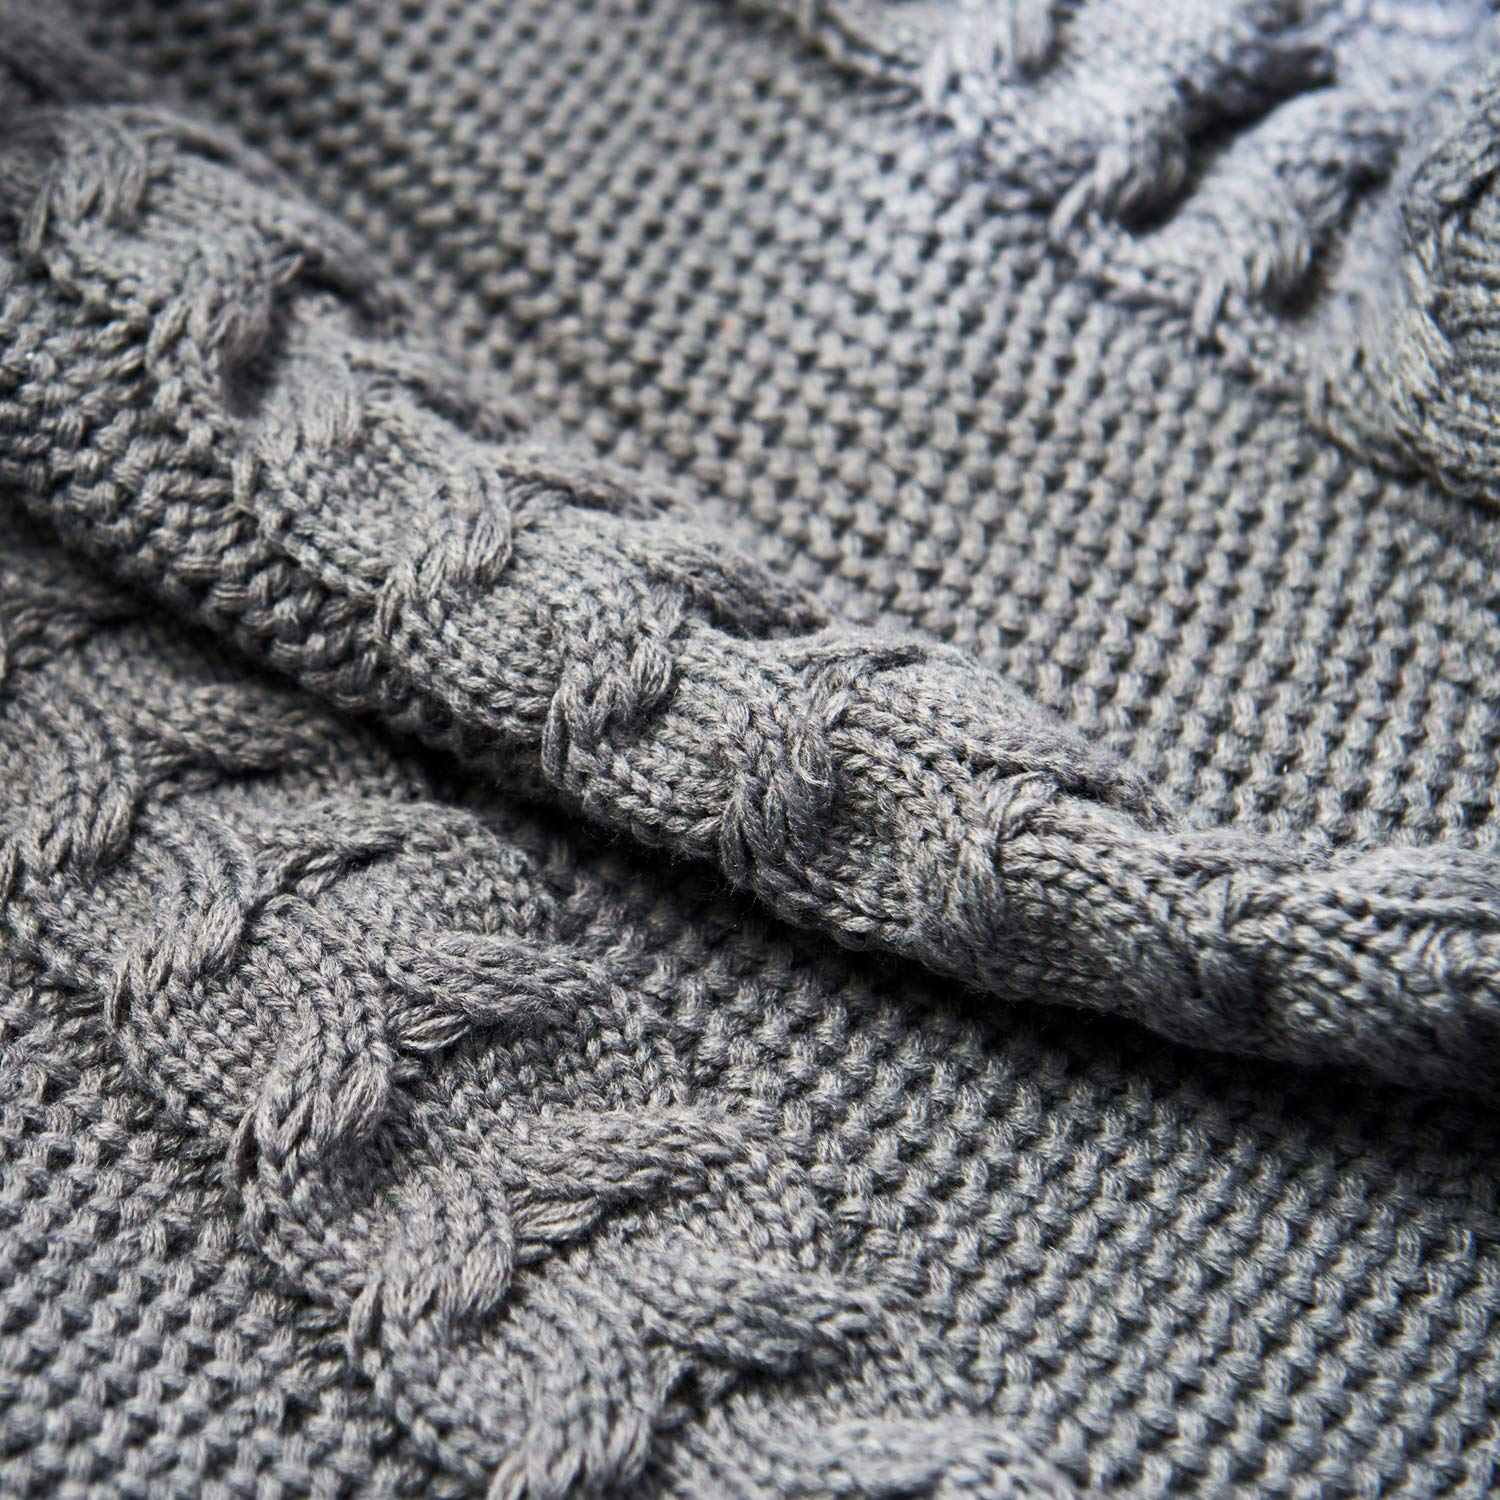 Grey Slim Cable Knitted 75 x49 Zebrum Knitted Throw Blanket 49X 75,100/% Cotton Cable Knit Blanket,Super Soft//Cozy//Warm